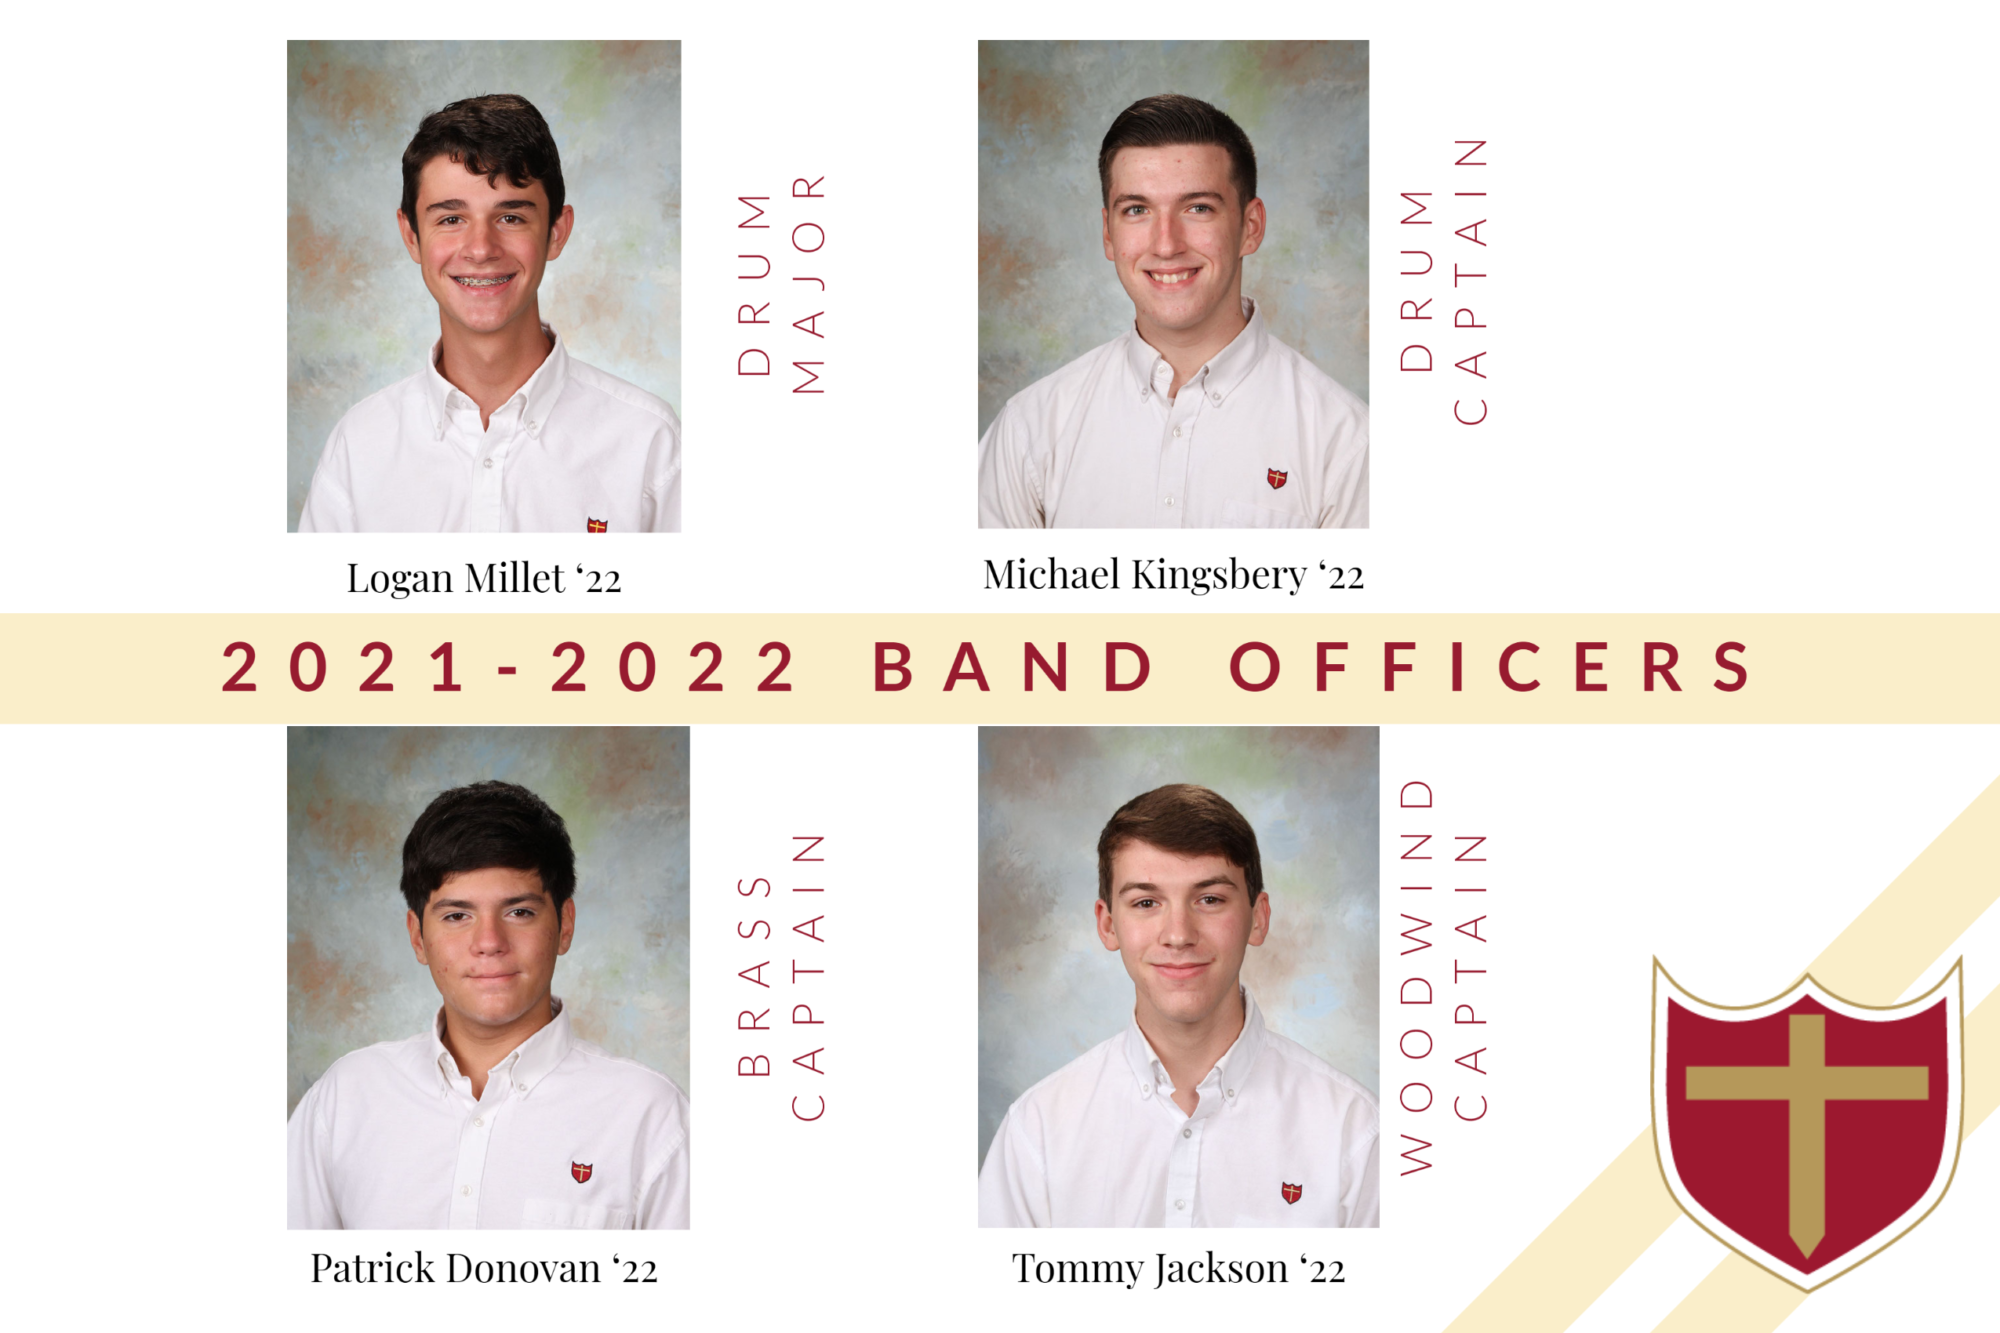 2021-2022 Band Officers